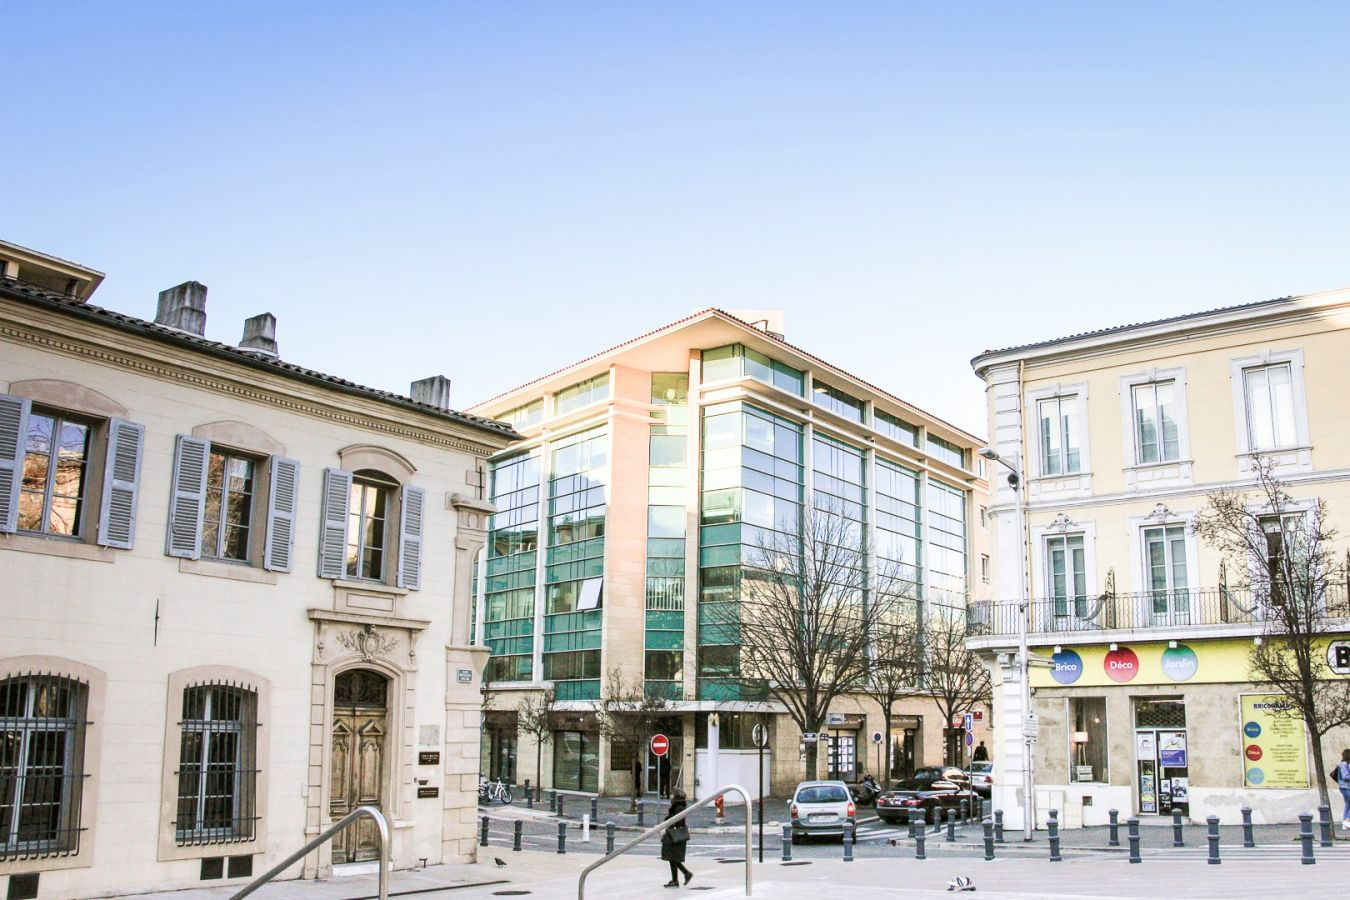 new place in Aix-en-Provence